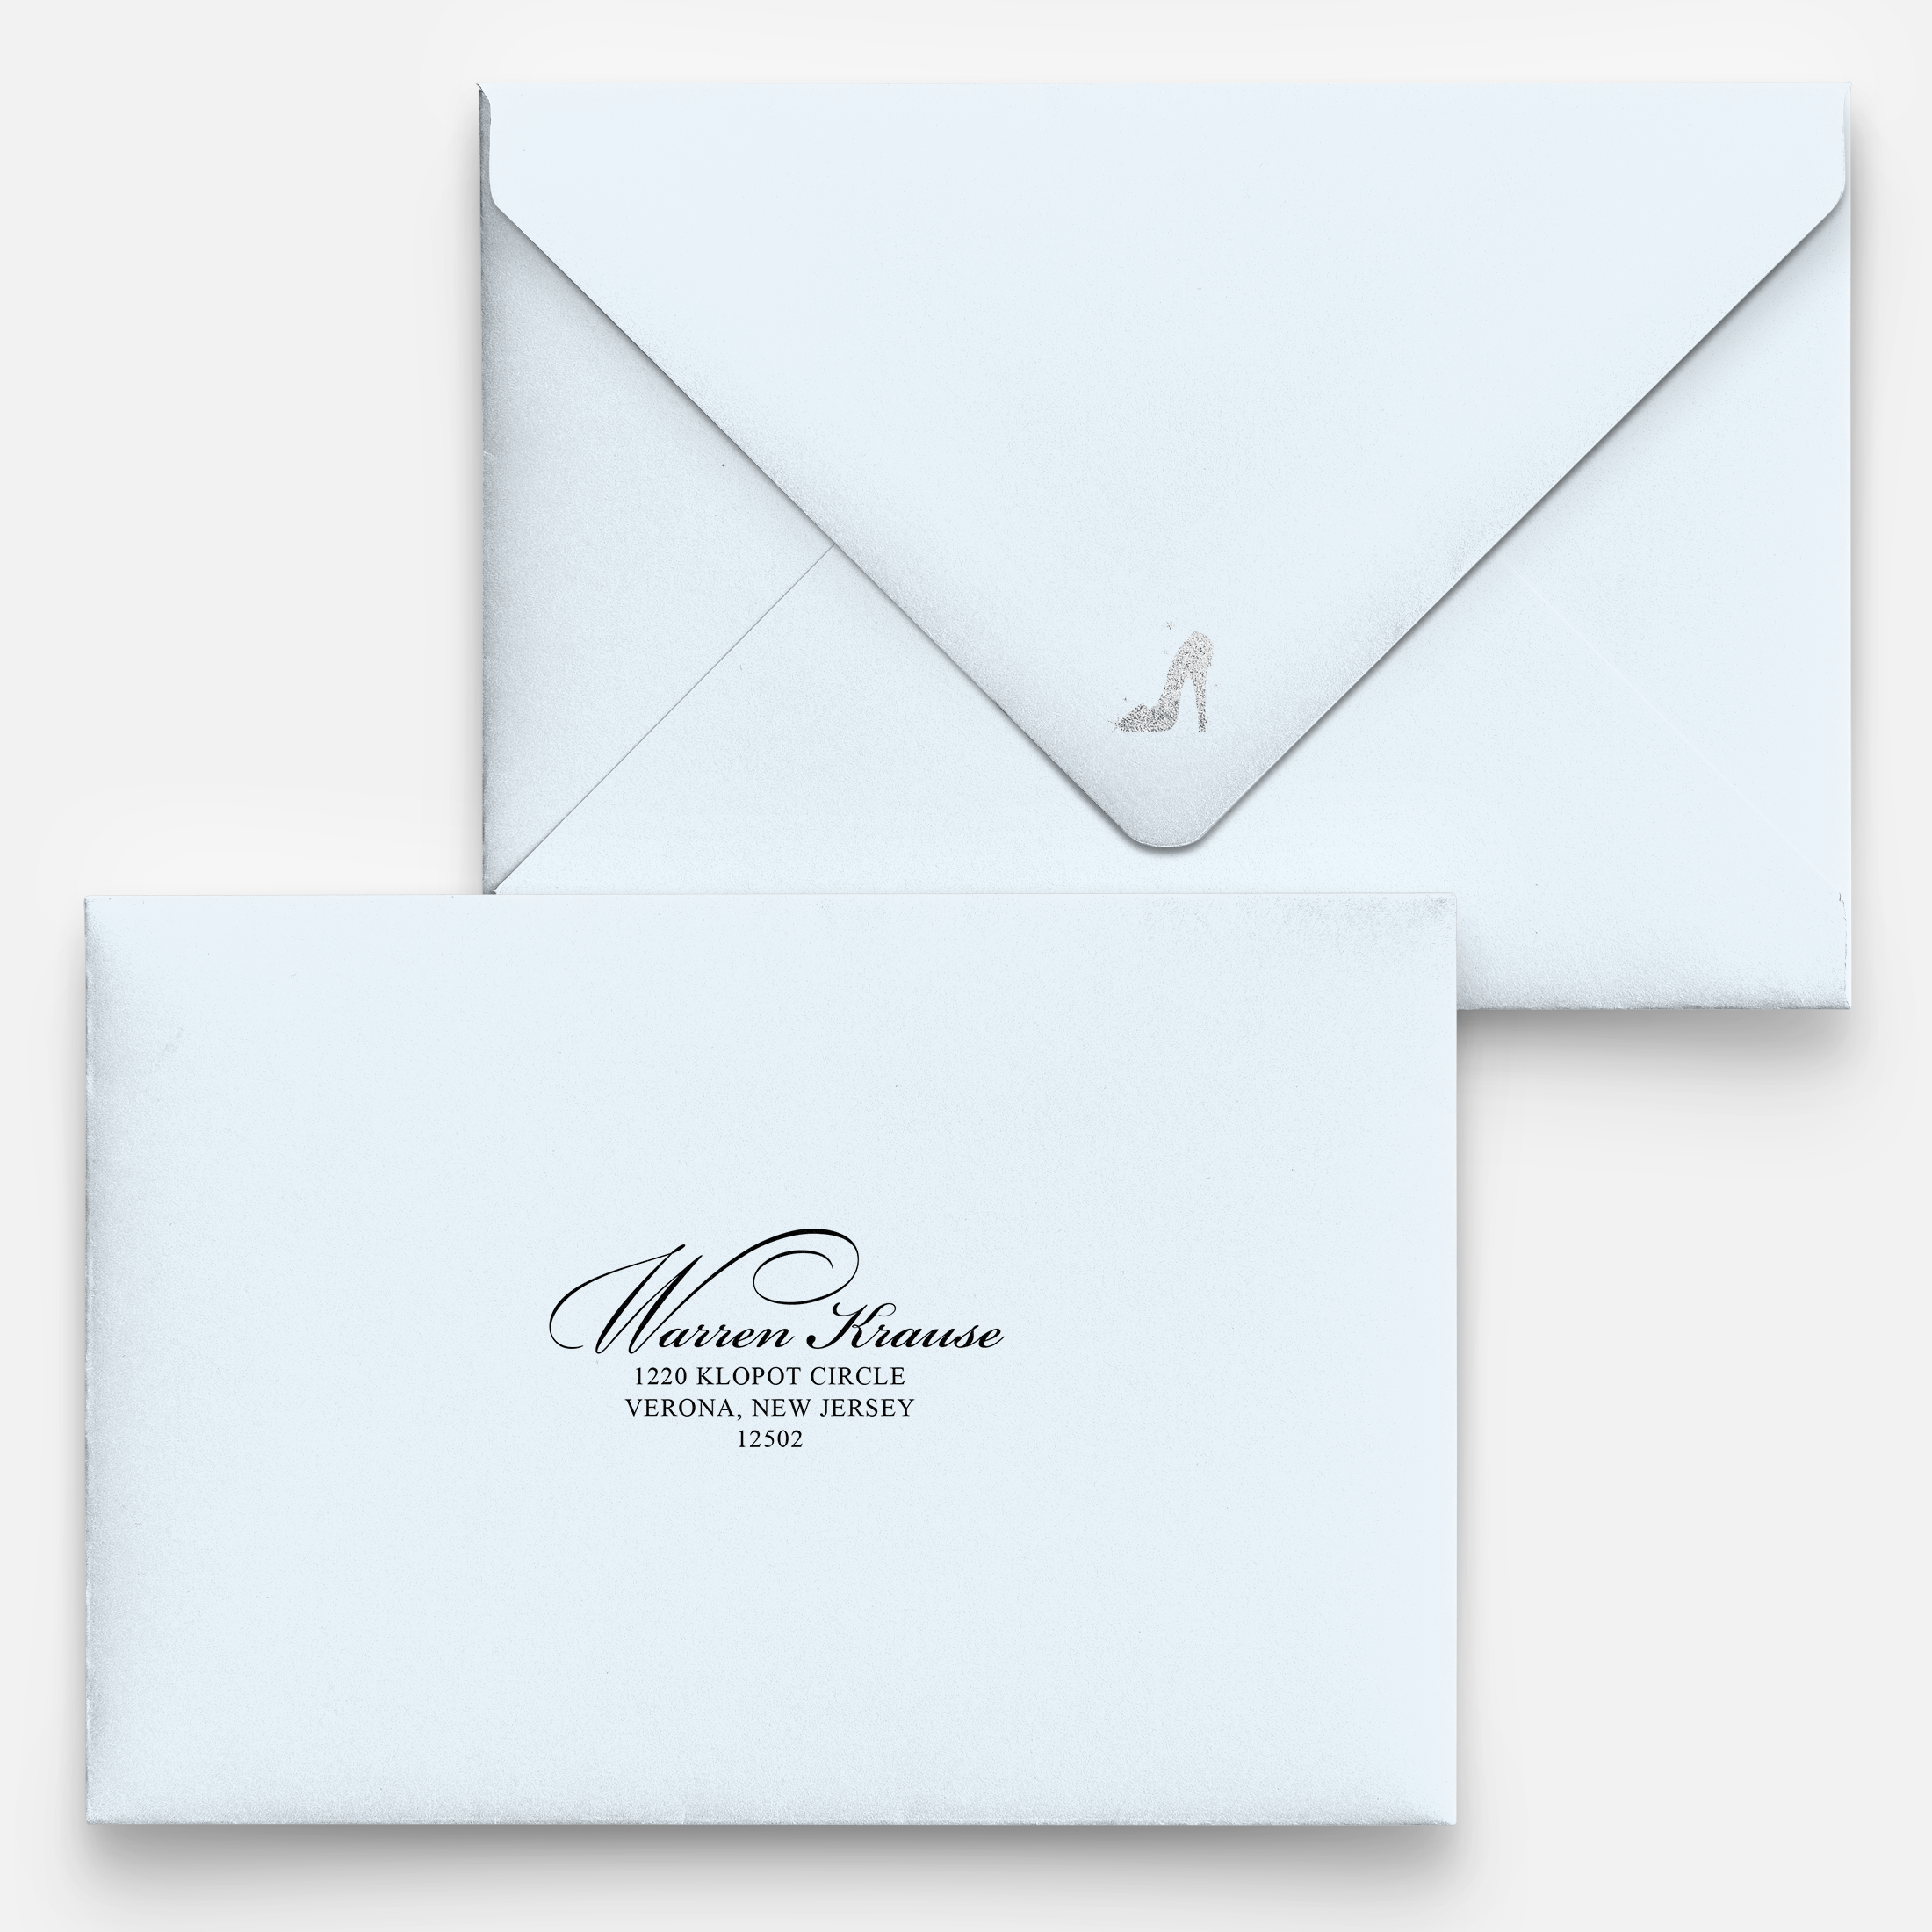 Cindrella-cards-and-envelopes-mockup-envelope3